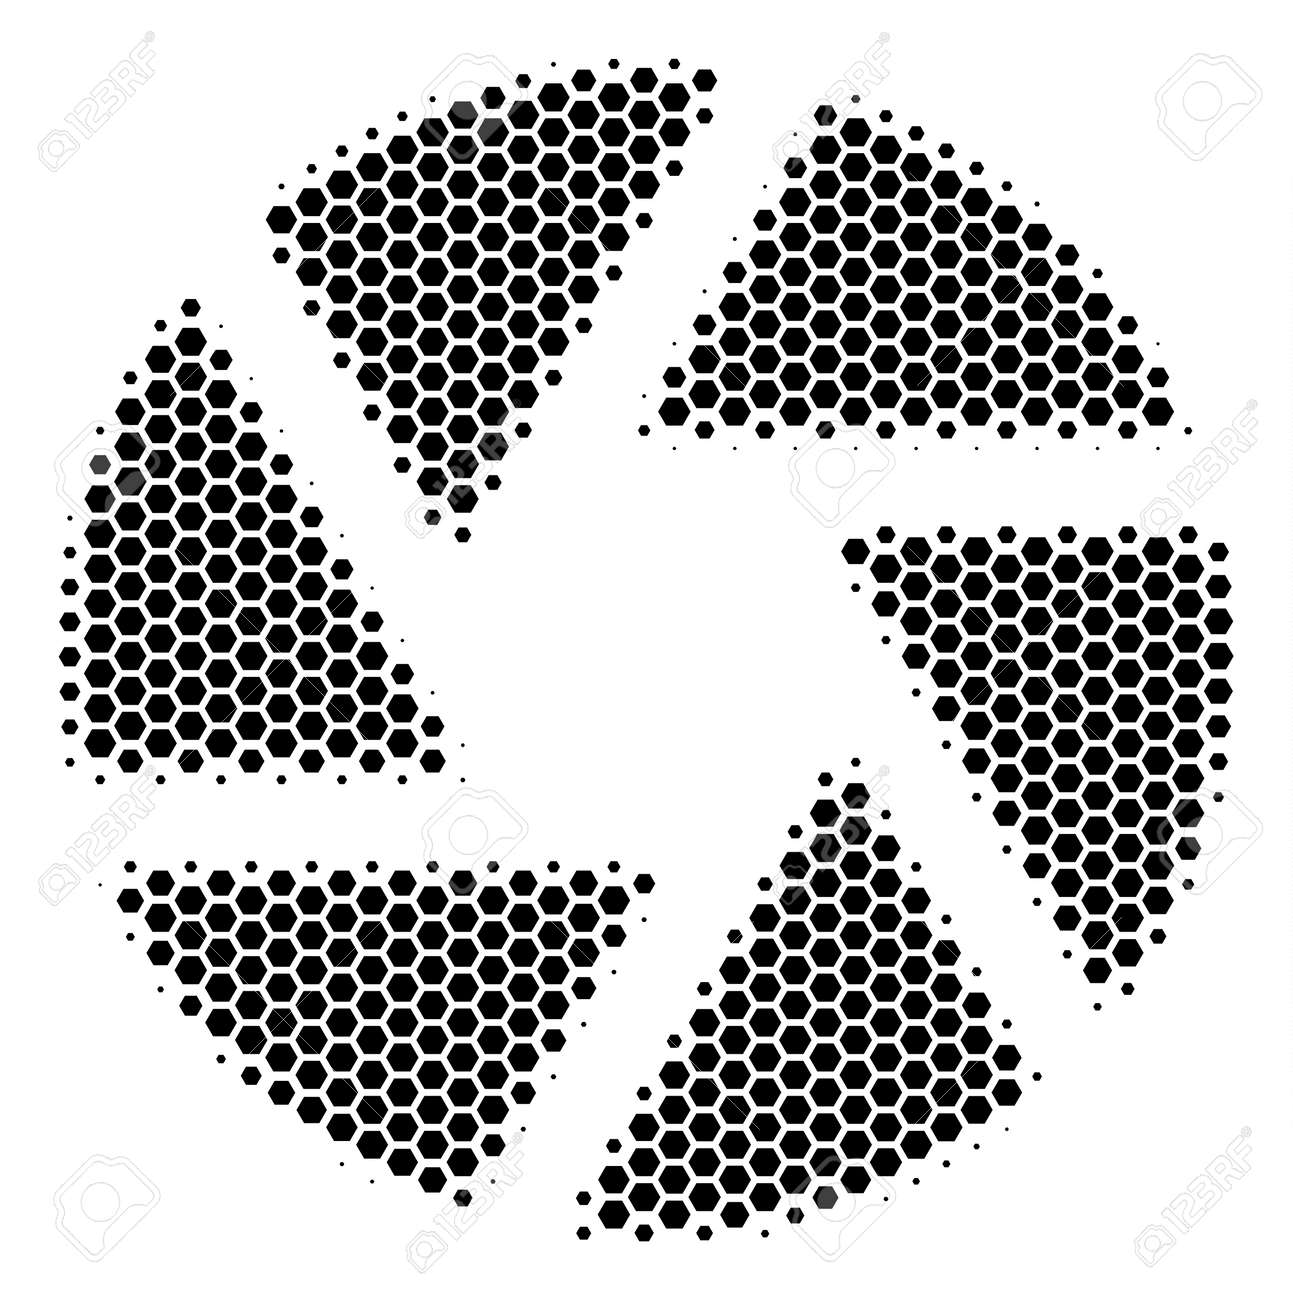 Halftone hexagon Shutter icon. Pictogram on a white background. Vector concept of shutter icon composed of hexagonal dots. - 100301724